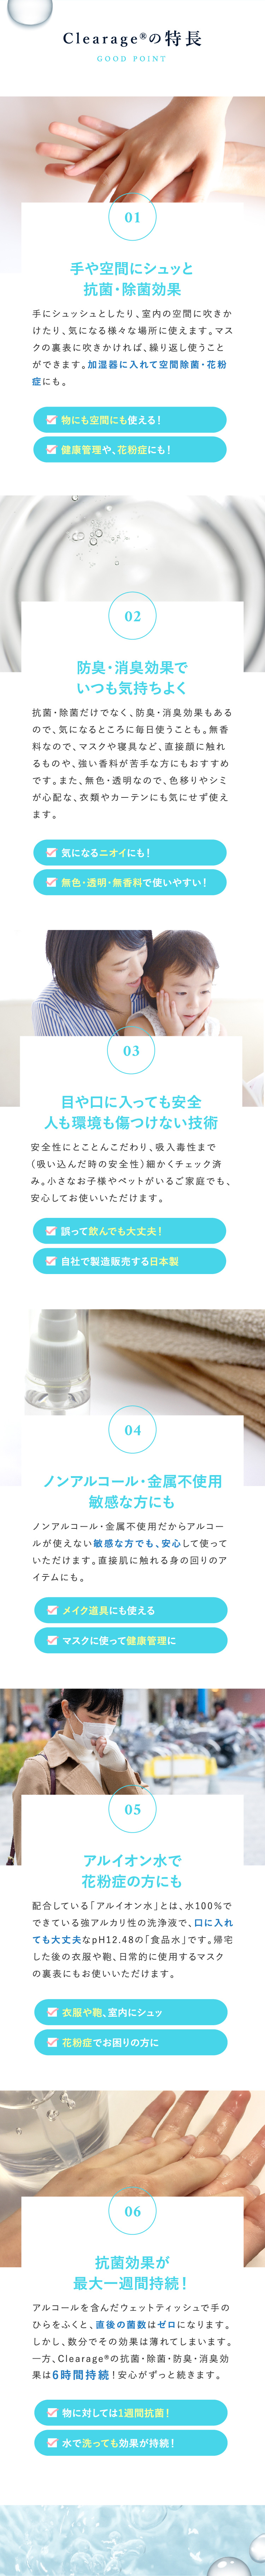 Clearage®の特長